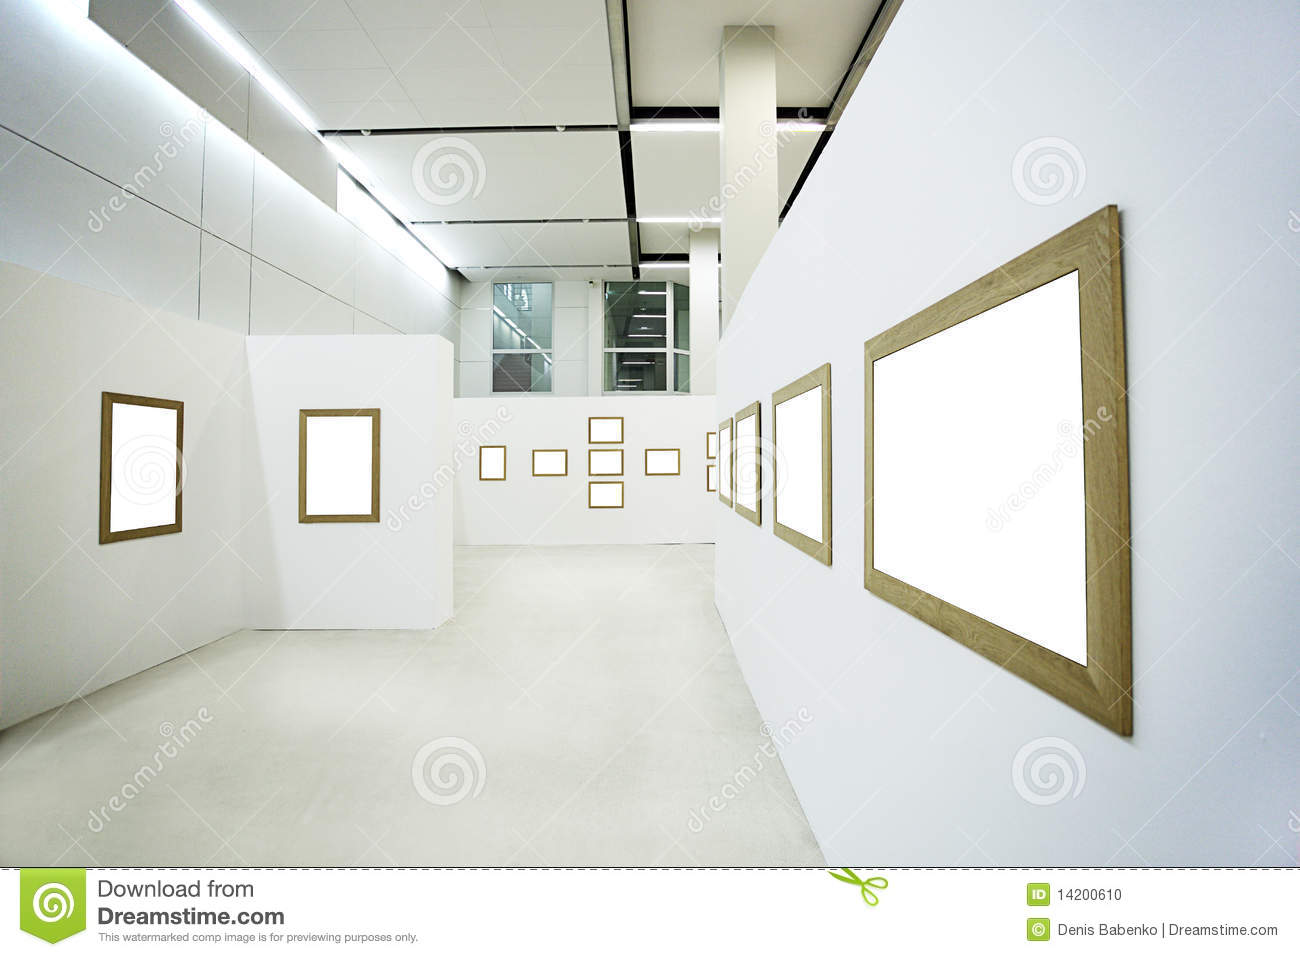 Nobody in the museum interior stock photo image of for Interieur design online